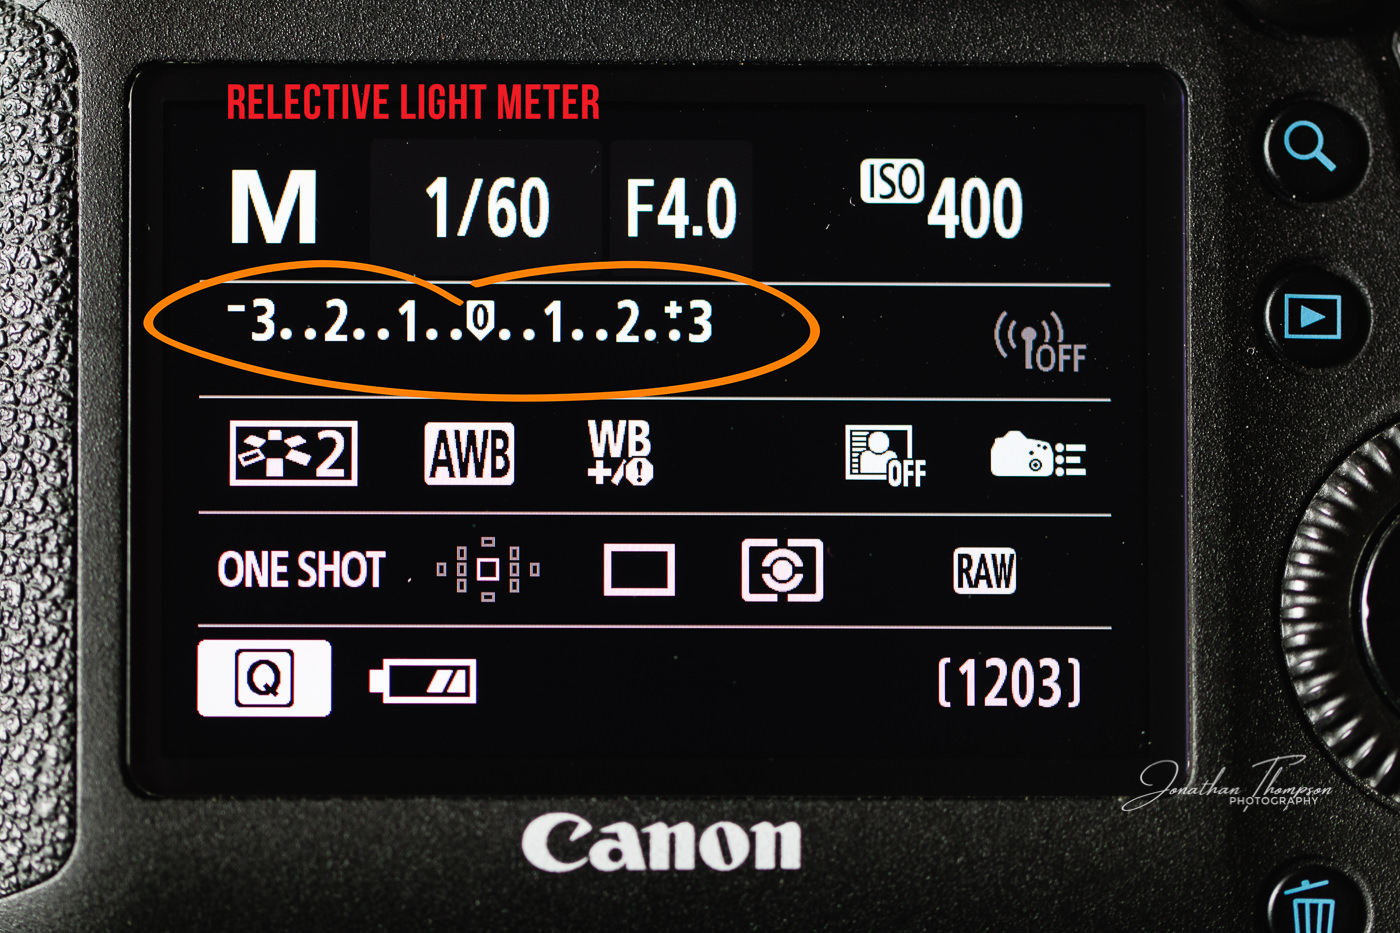 Rear screen of a Canon DSLR info screen with the reflective meter readout circled